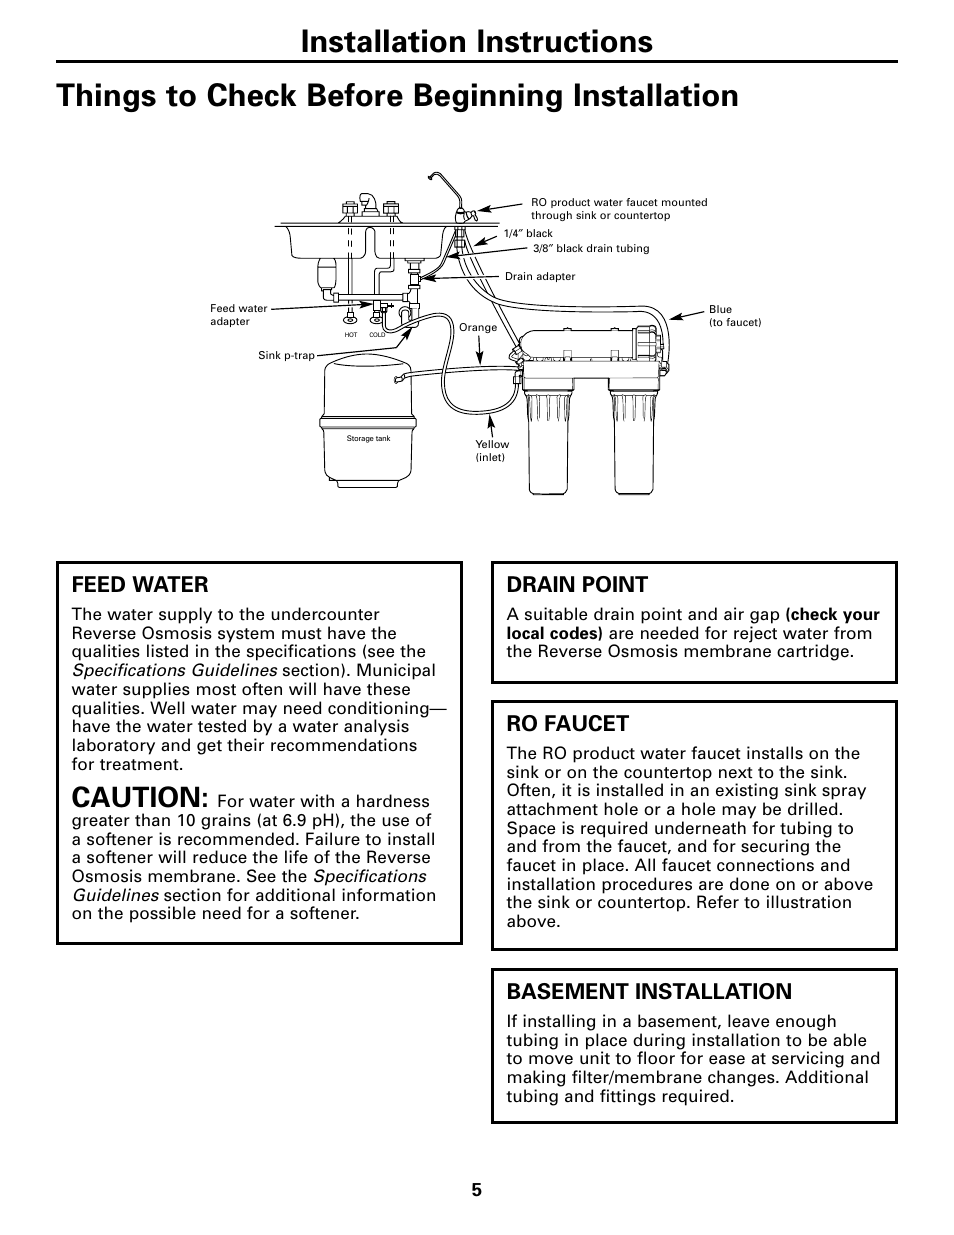 Things to check before installation, Caution, Feed water | GE GXRM10G User  Manual | Page 5 / 64